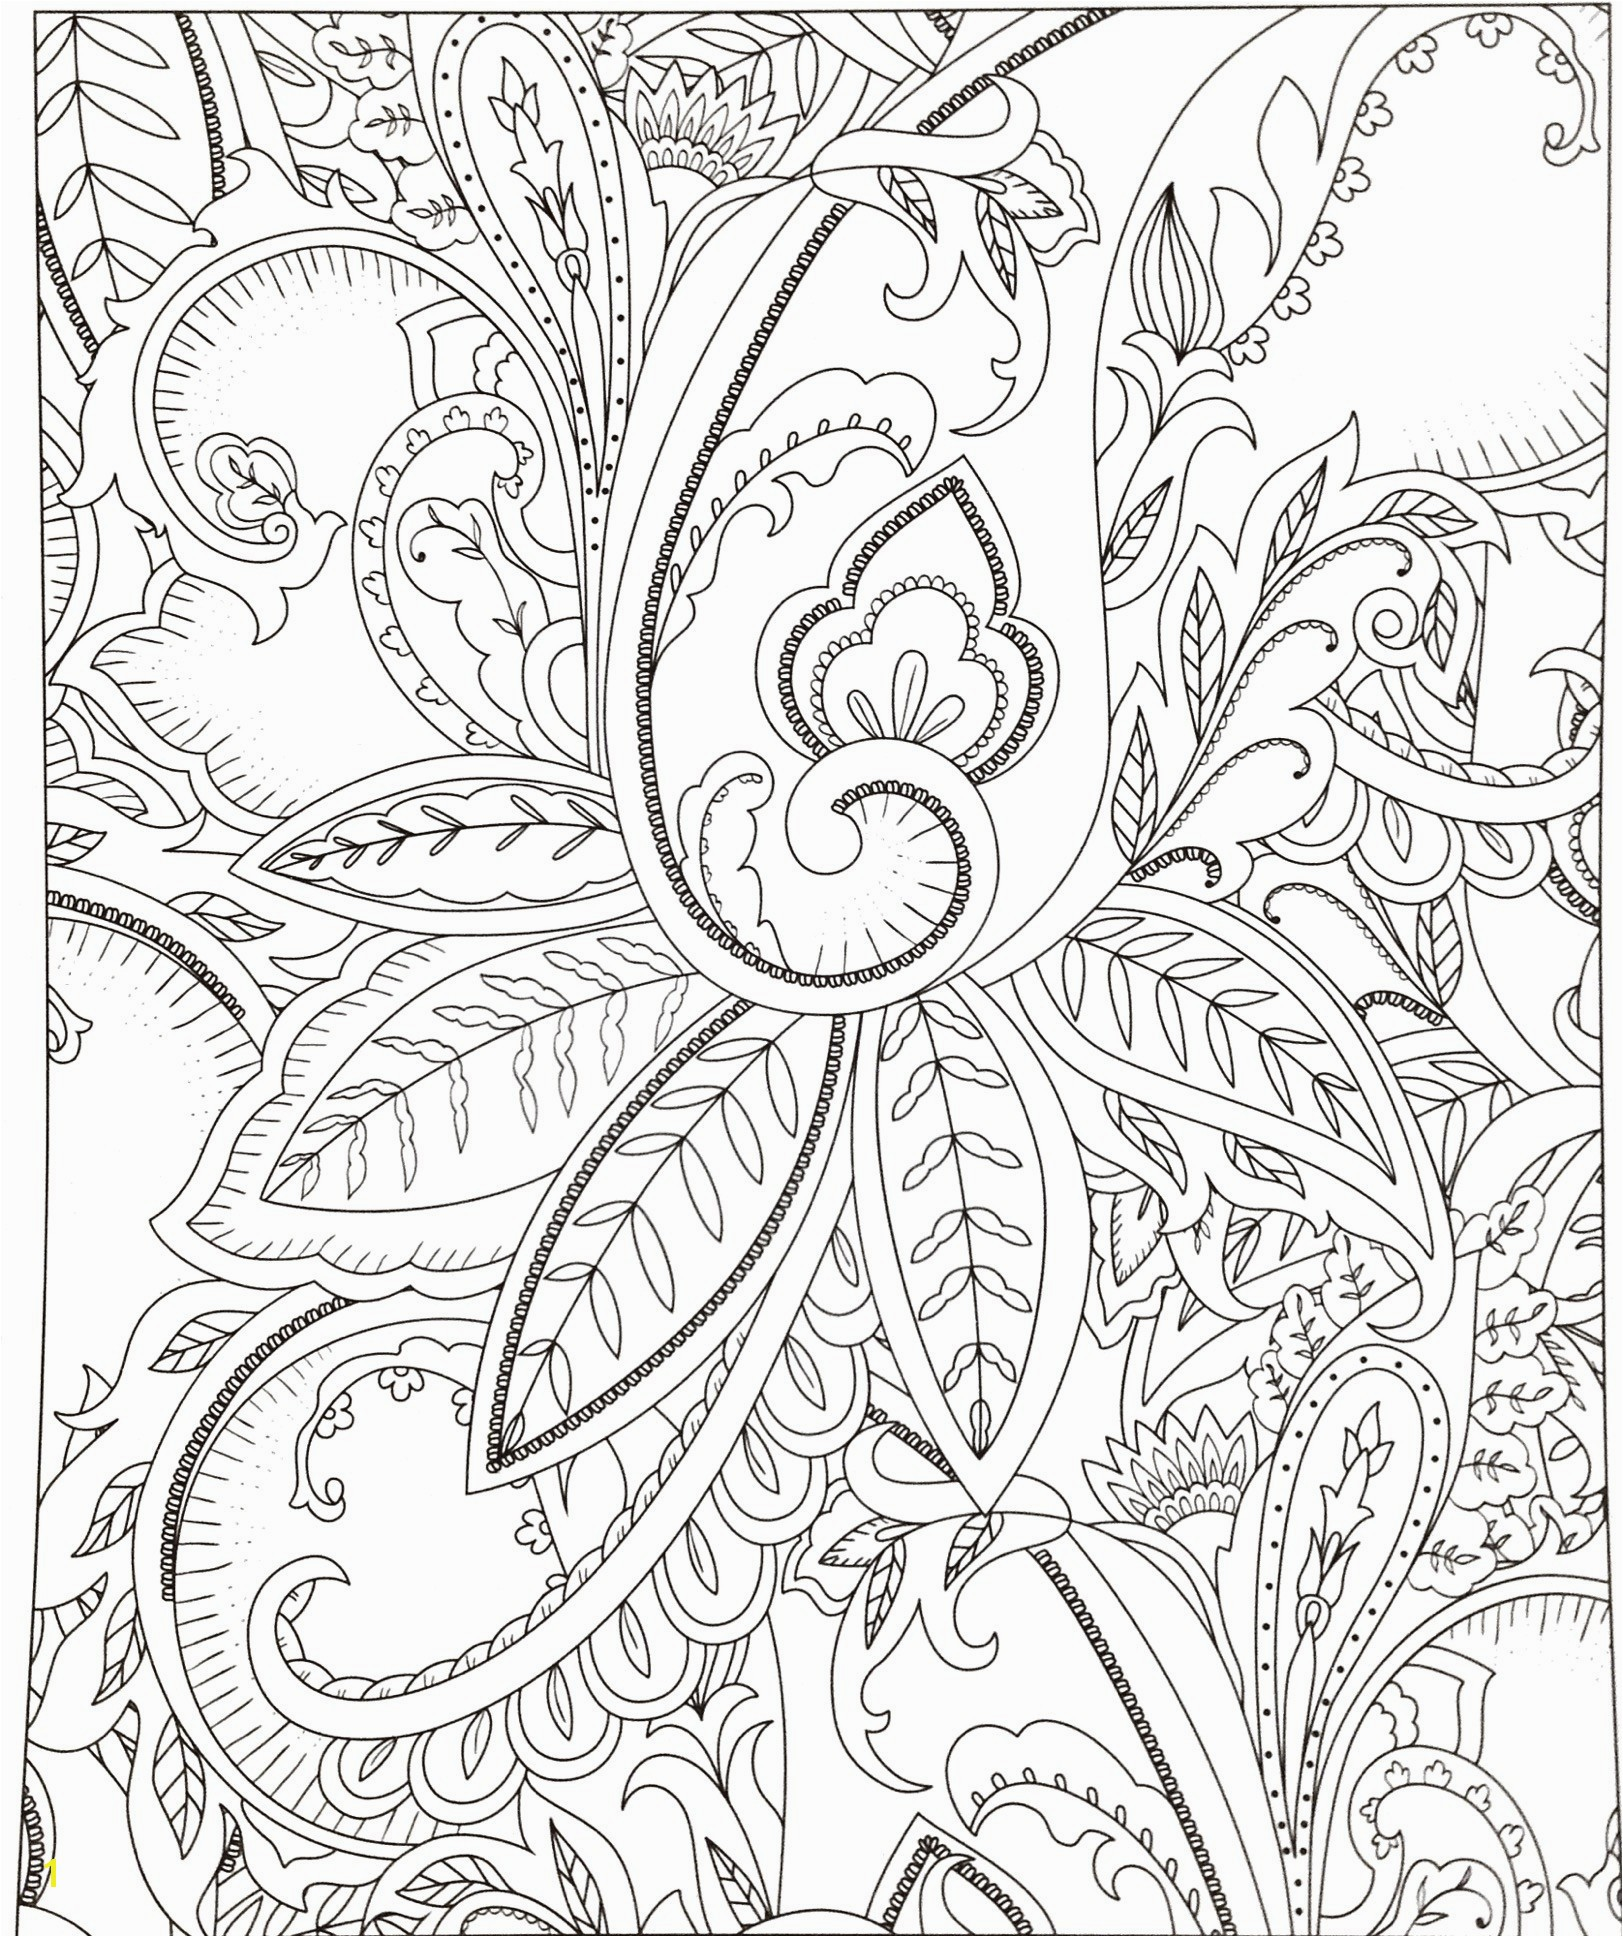 Tools Coloring Pages Elegant New Beautiful Coloring Pages Fresh Https I Pinimg 736x 0d 98 6f